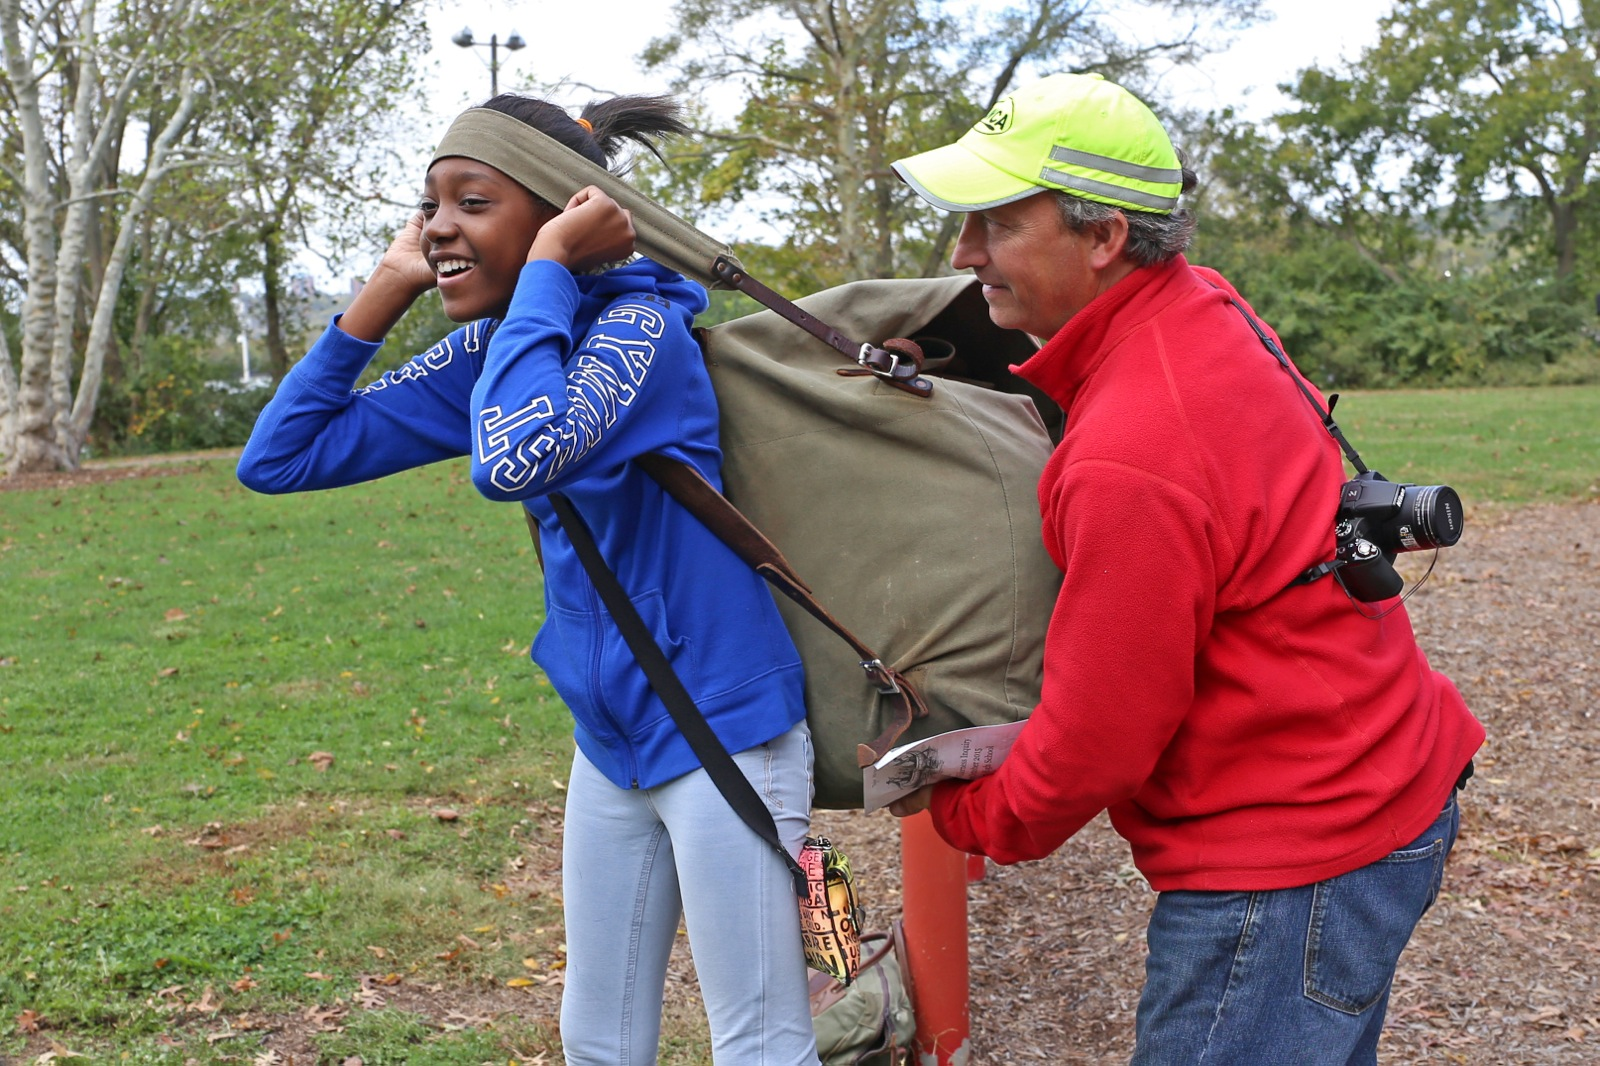 a participant carries a large back pack across a field while a staff member helps